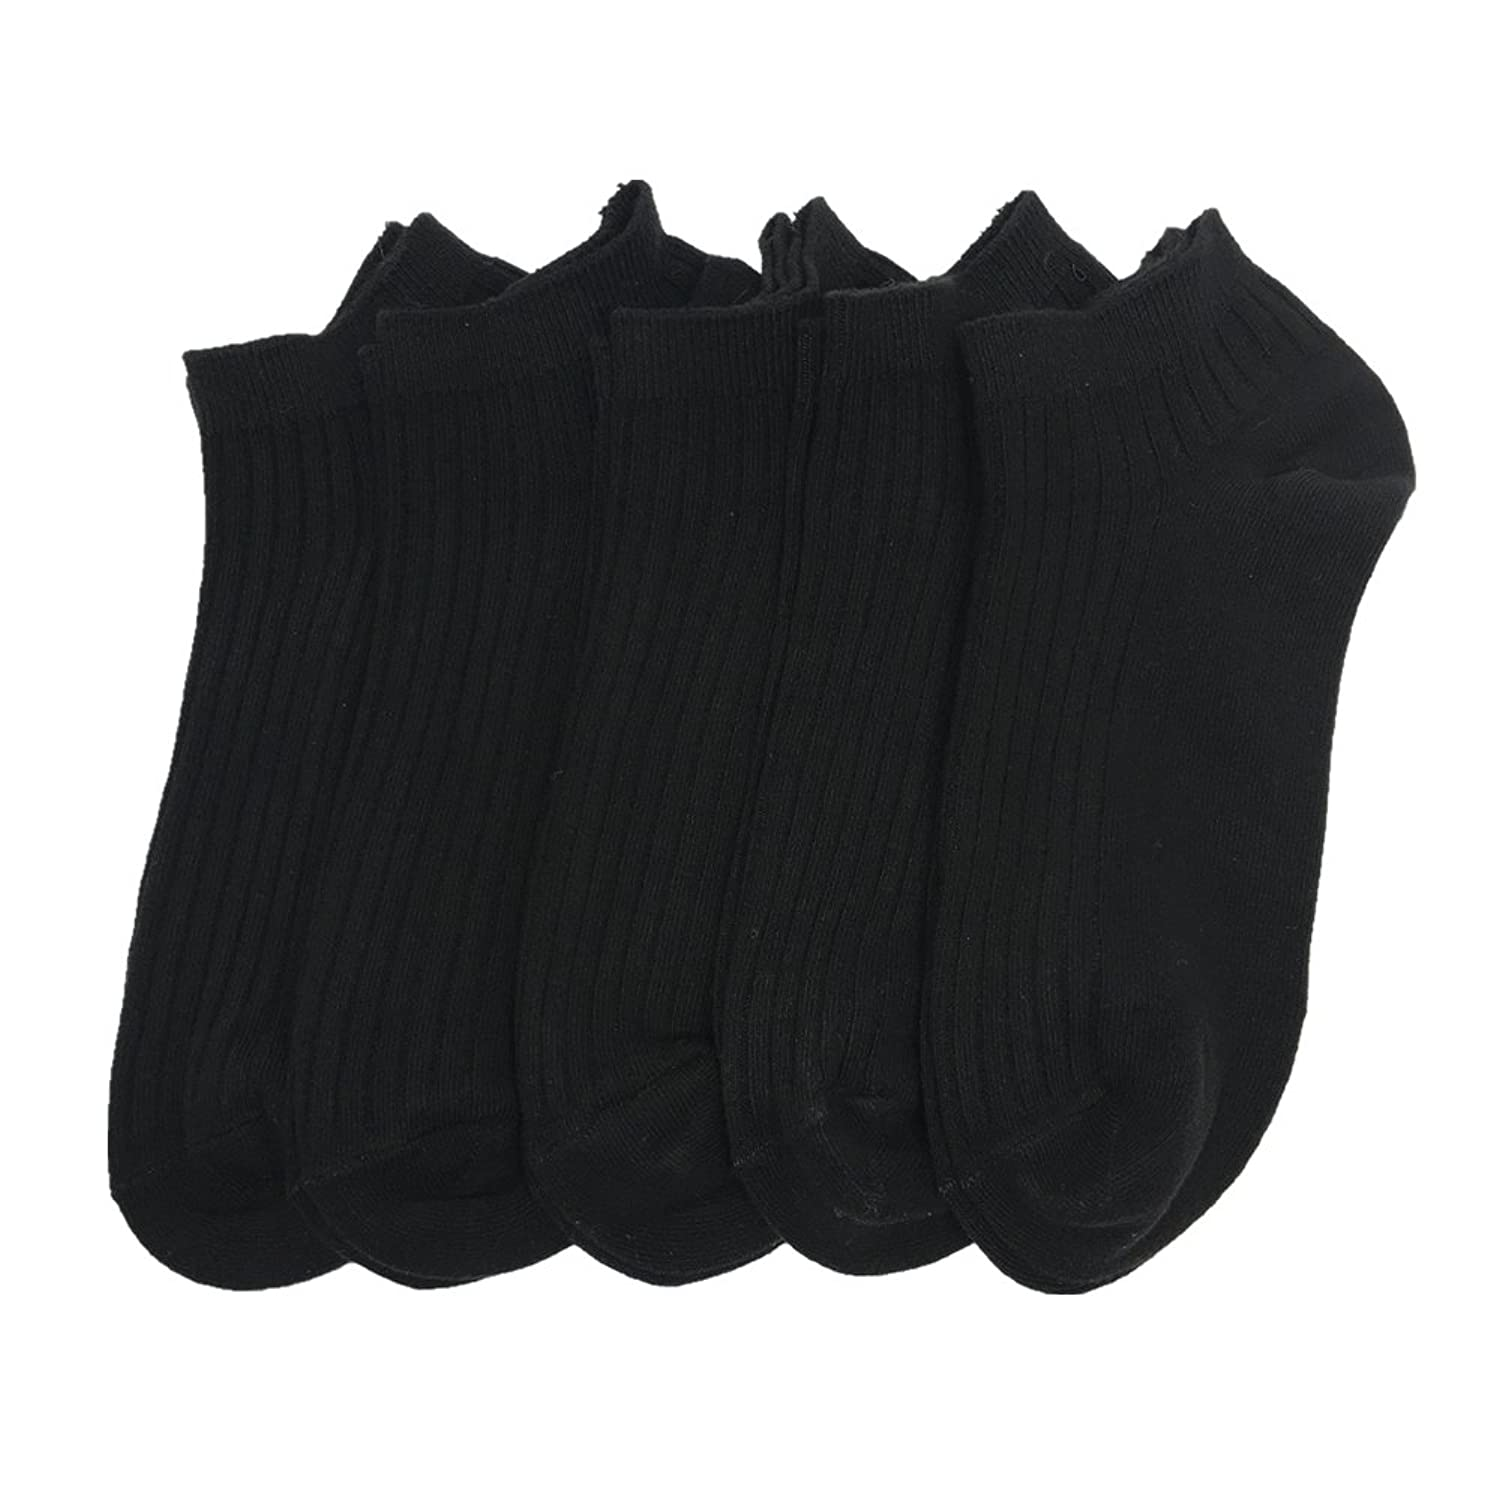 Ankle Length Cotton Sock Low Cut Athletic Thin Socks Comfortable Breathable Sock